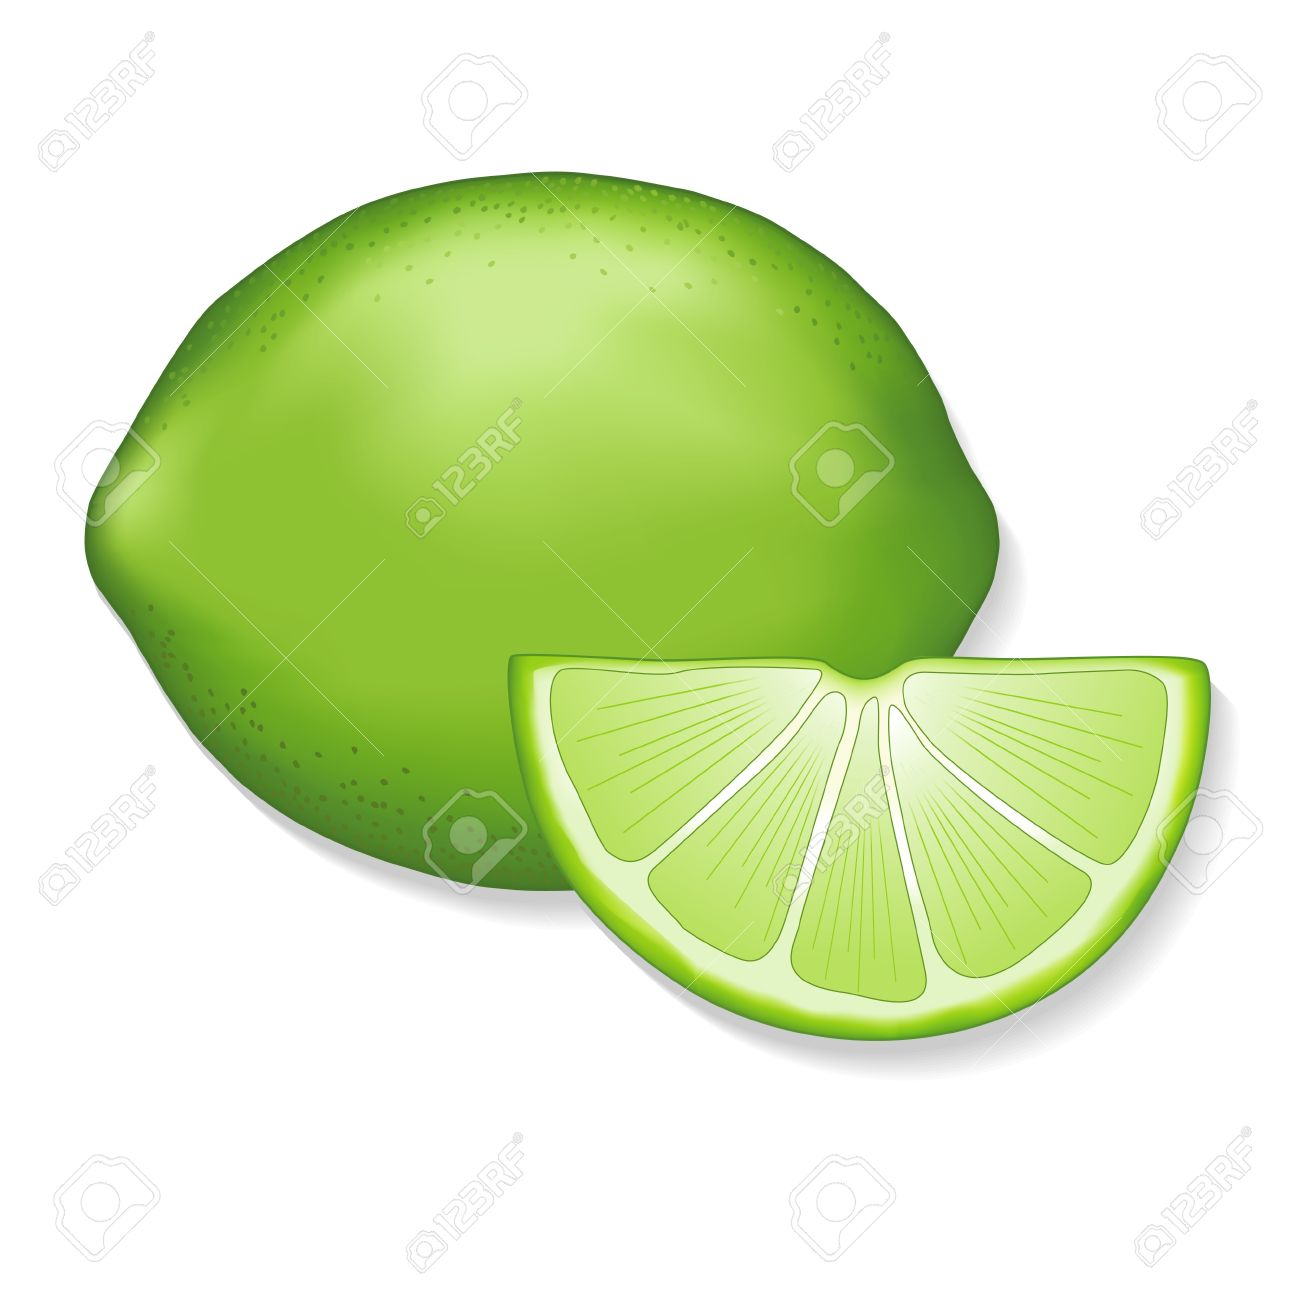 Lime and lime slice illustration isolated on white EPS8 compatible - 13726204